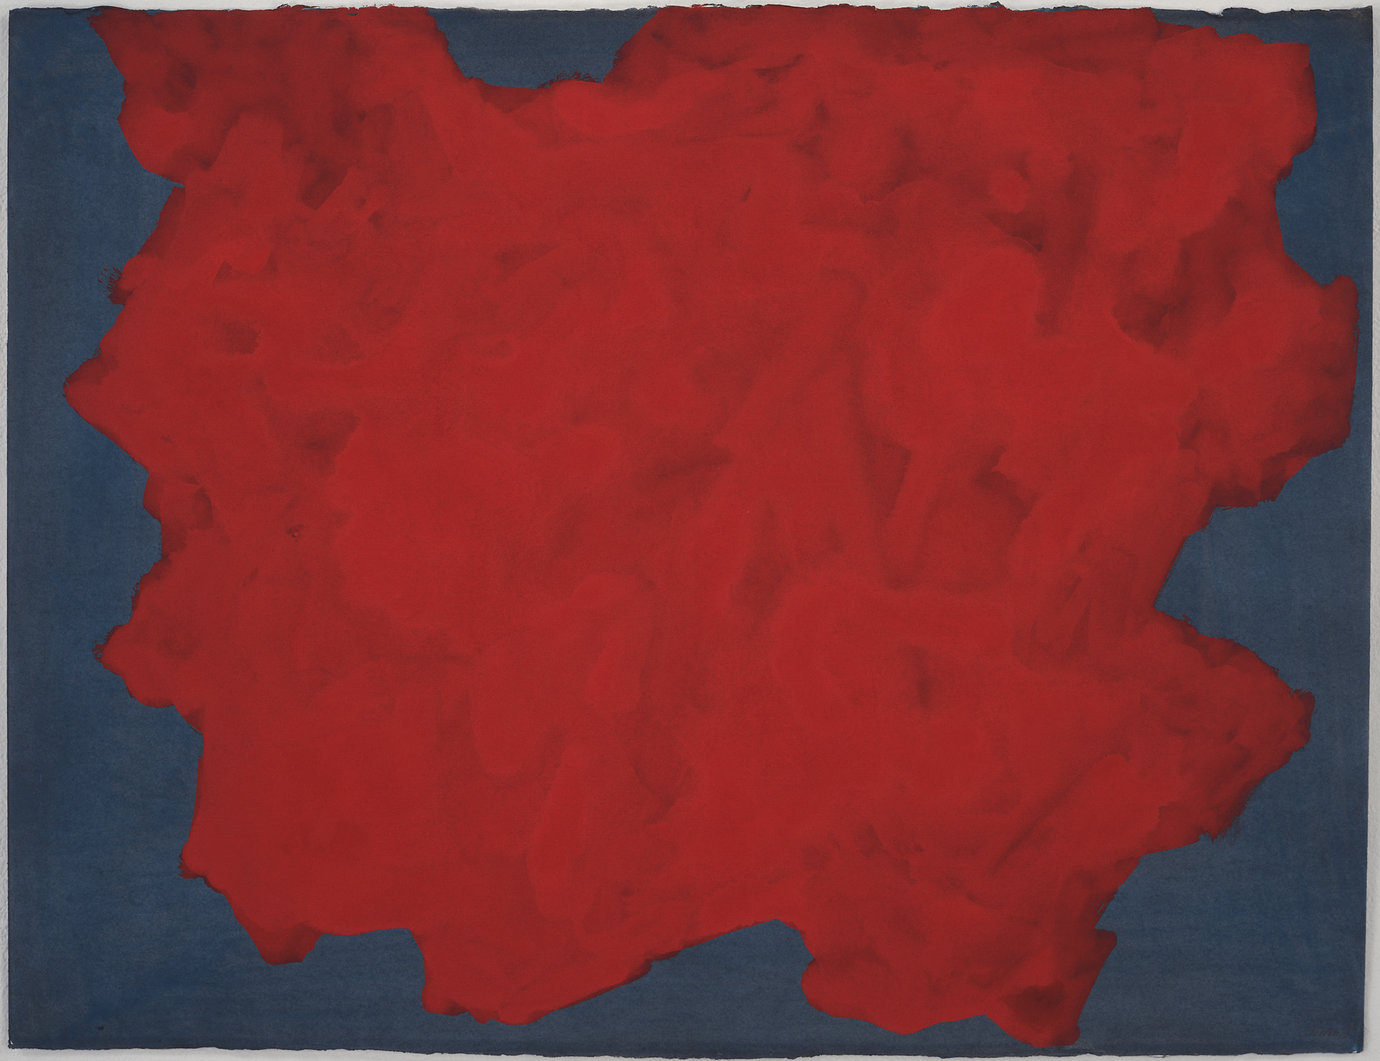 ", 1998. Gouache on paper, 22-1/2"" x 29-1/2"" (57.2 cm x 74.9 cm)."